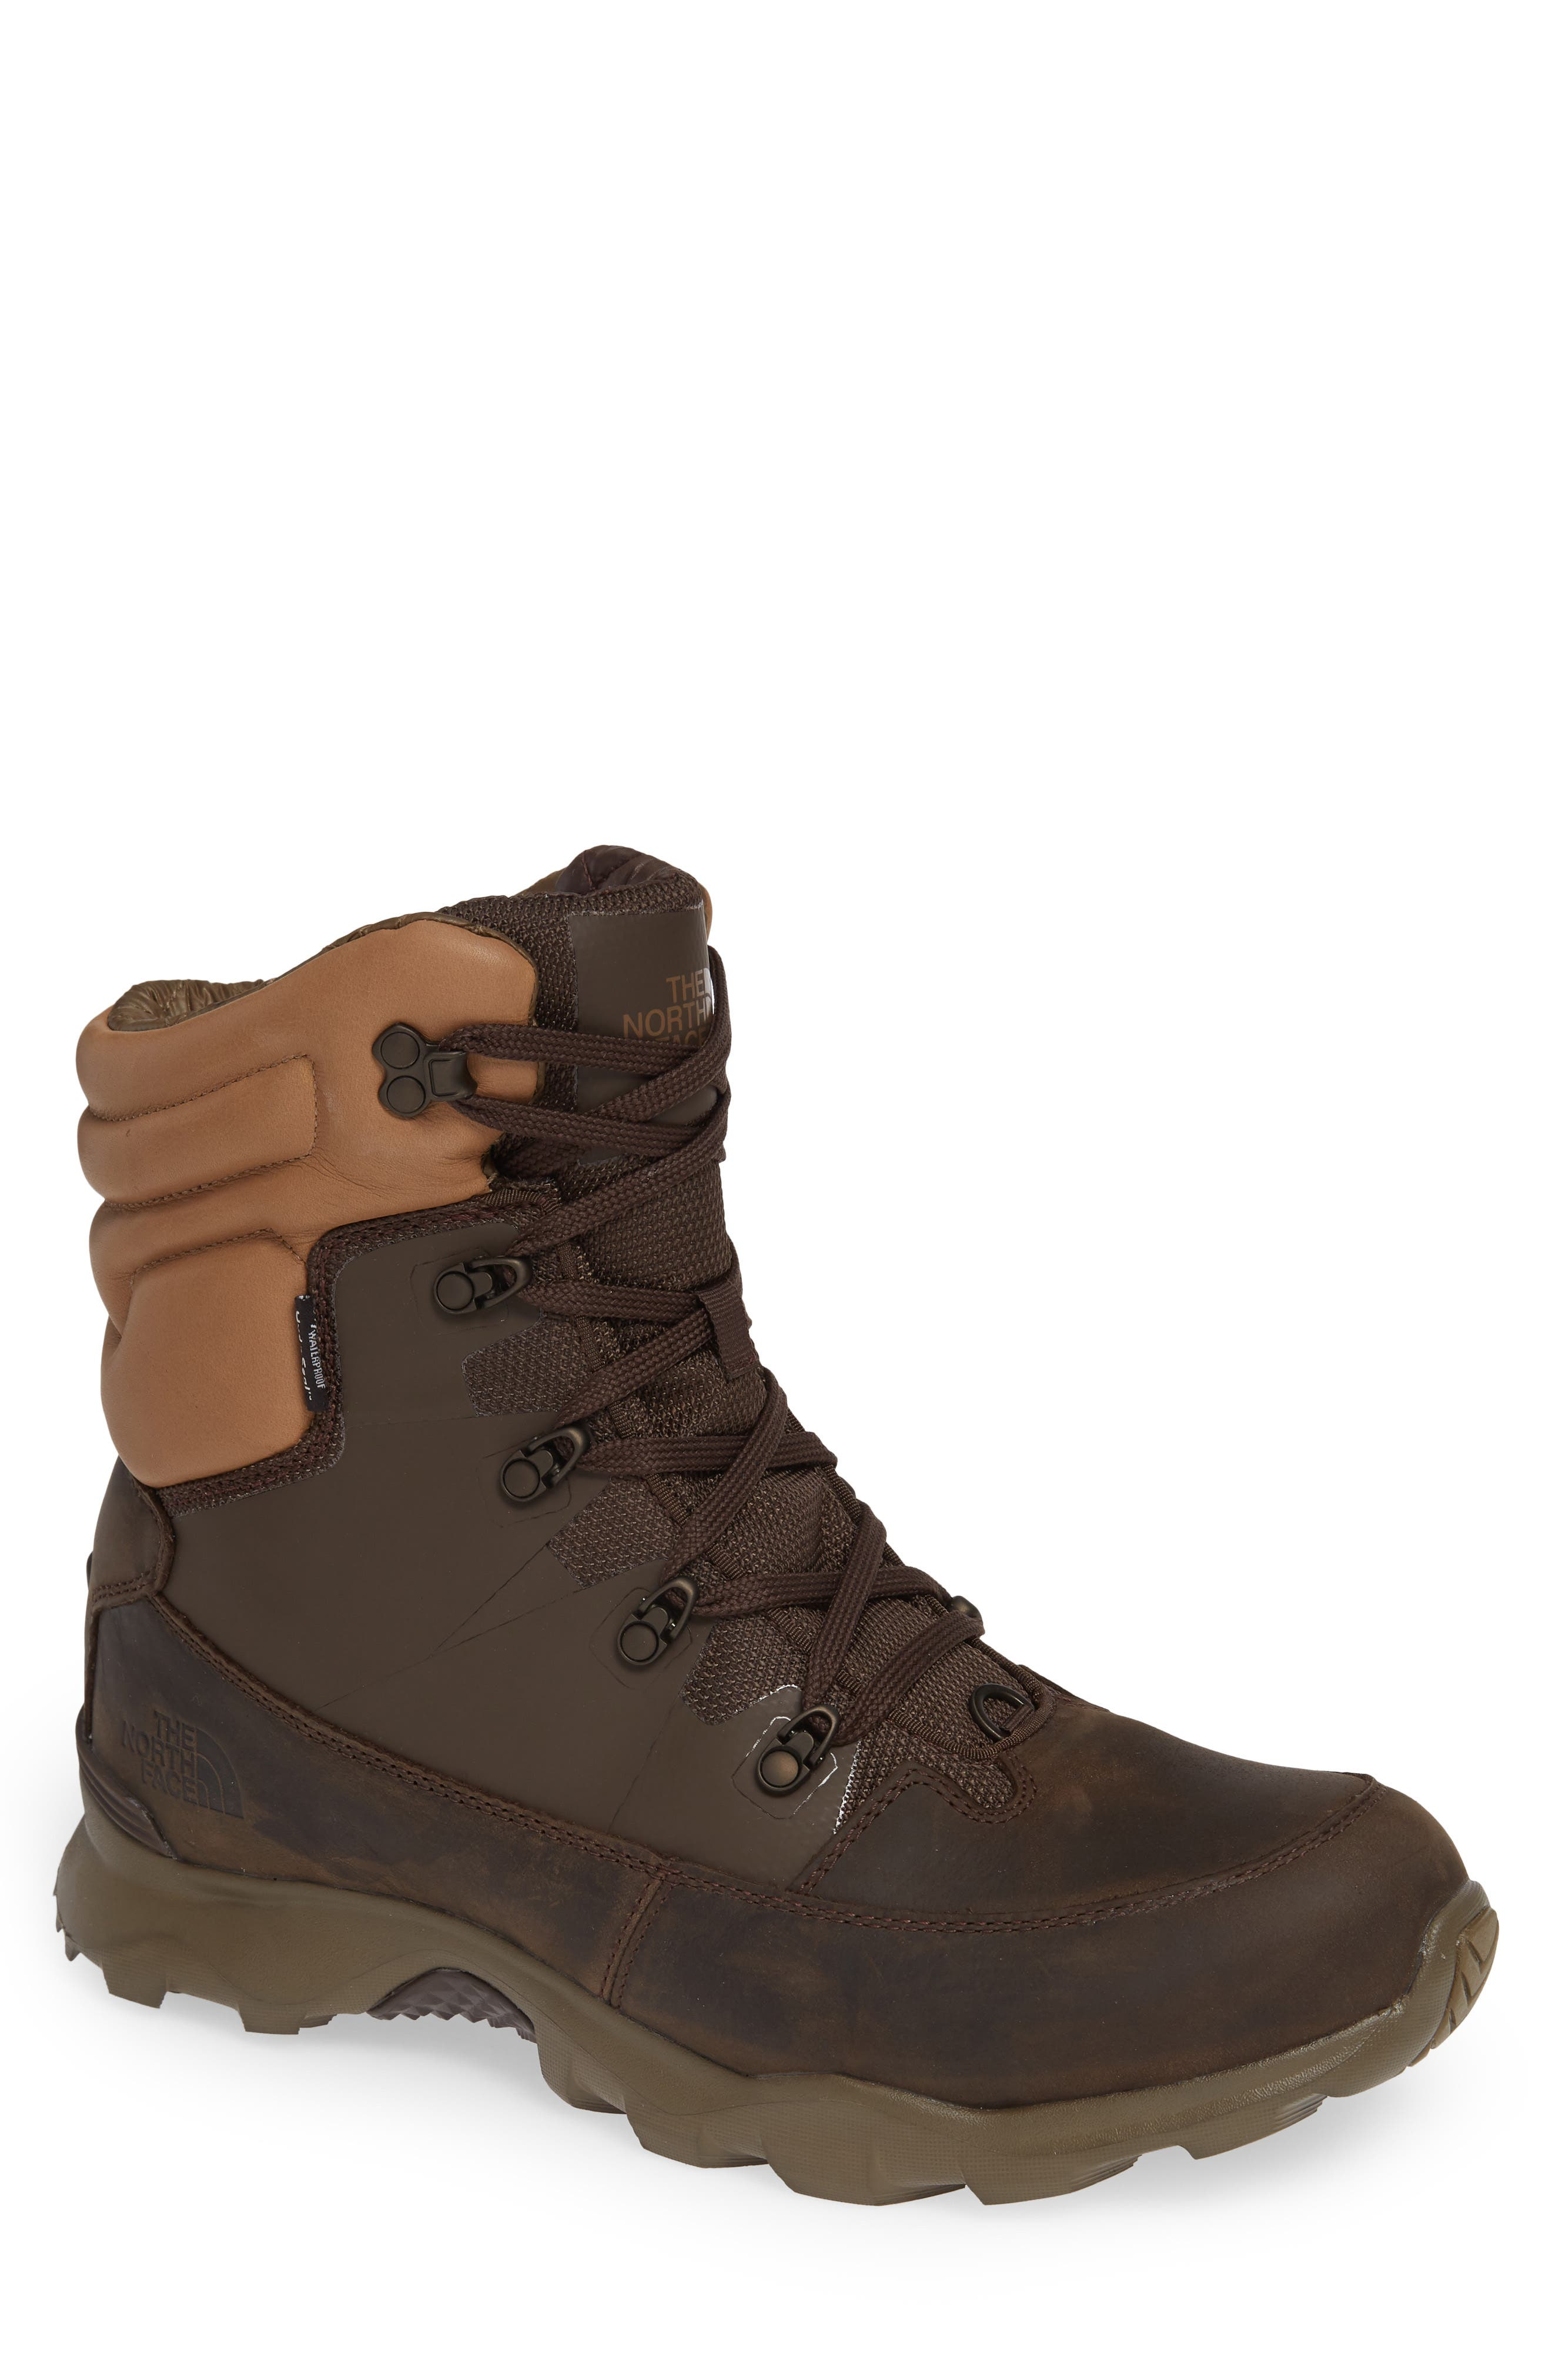 ThermoBall Lifty Snow Boot,                             Main thumbnail 1, color,                             CHOCOLATE BROWN/ CARGO KHAKI